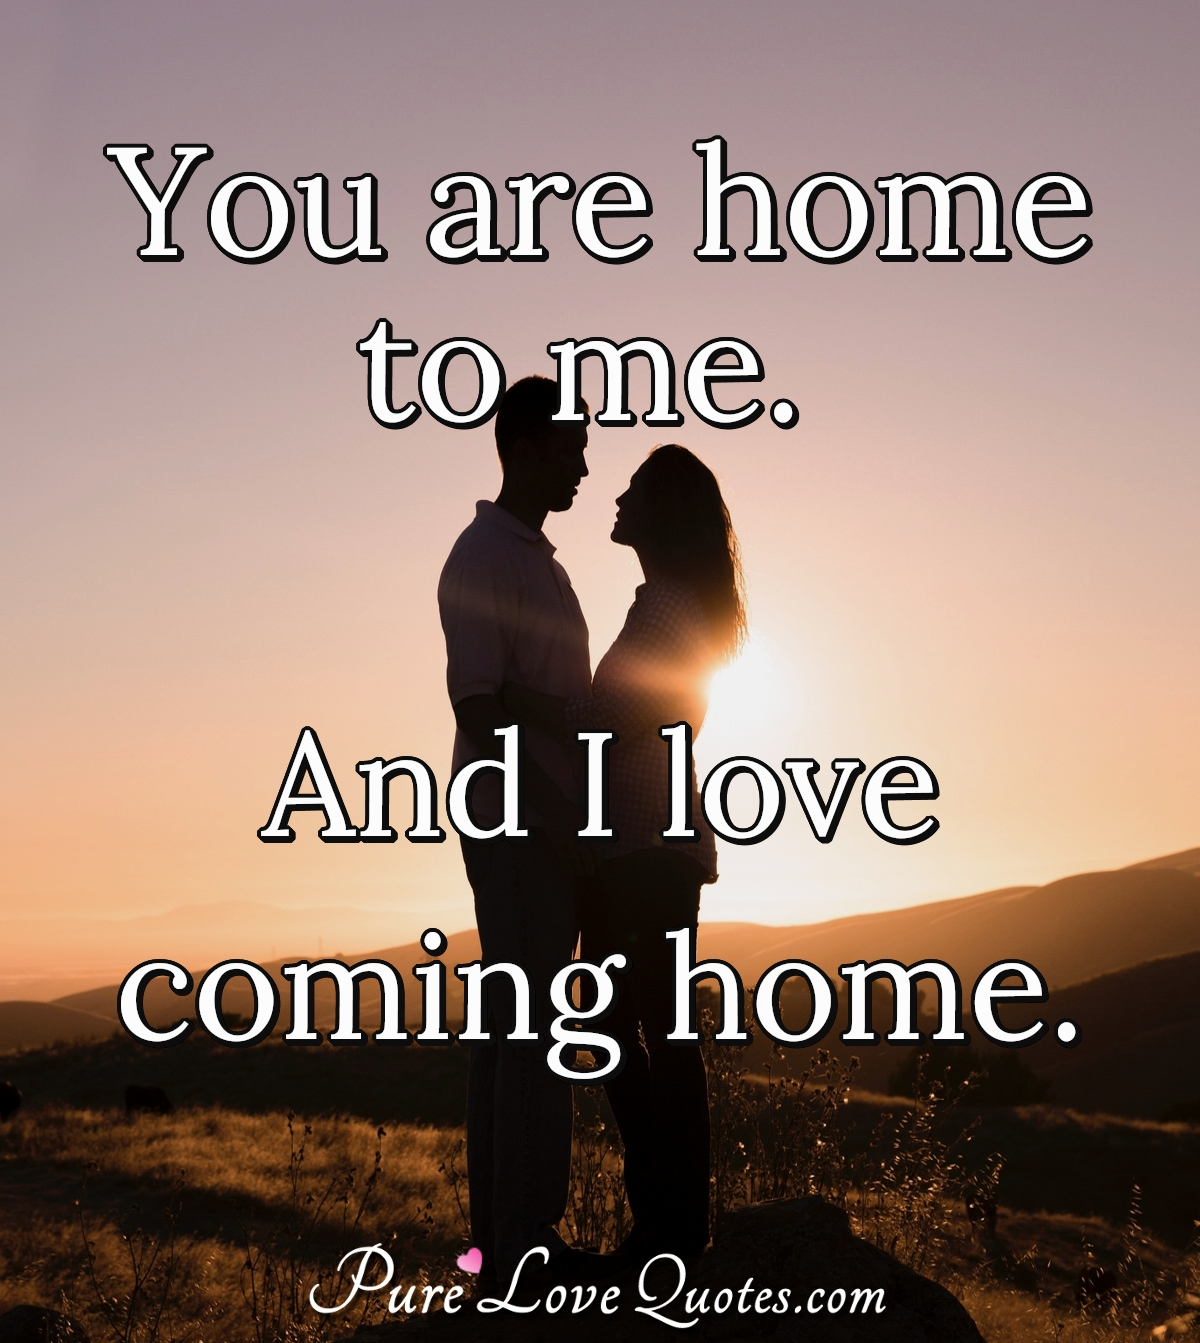 You are home to me, and I love coming home.  PureLoveQuotes